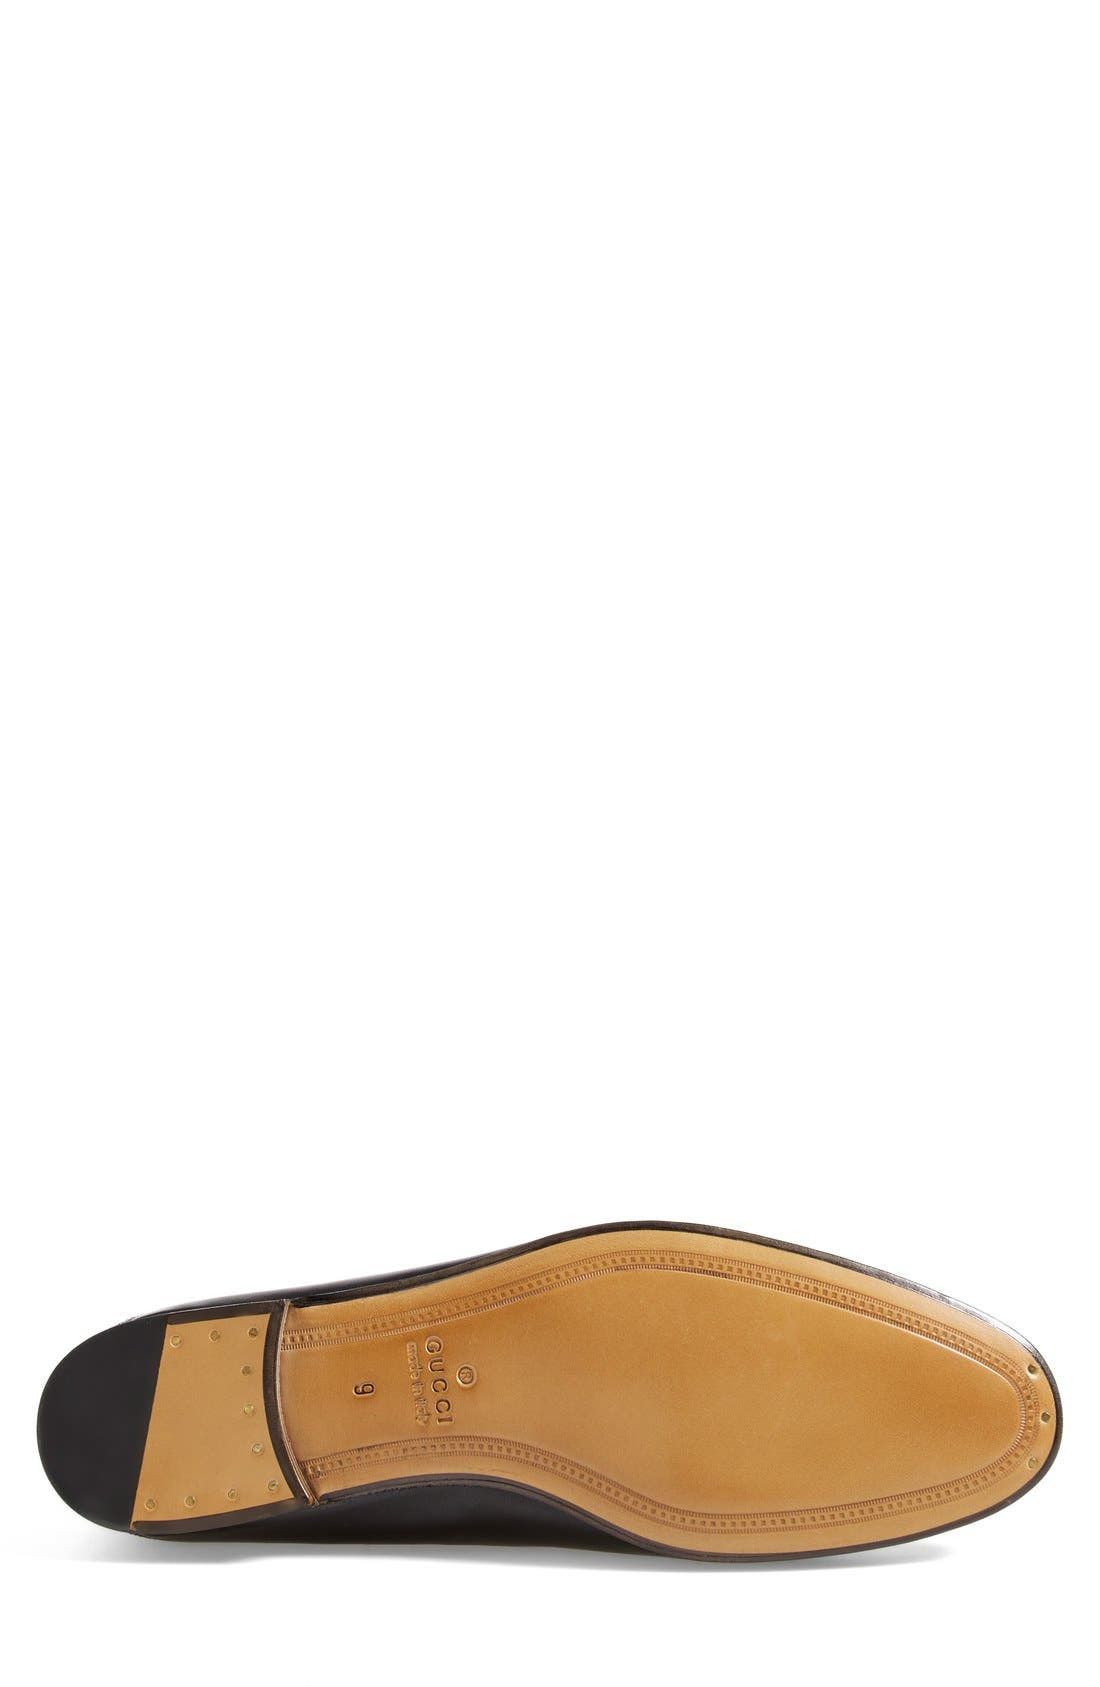 Alternate Image 4  - Gucci Brixton Convertible Bit Loafer (Men)